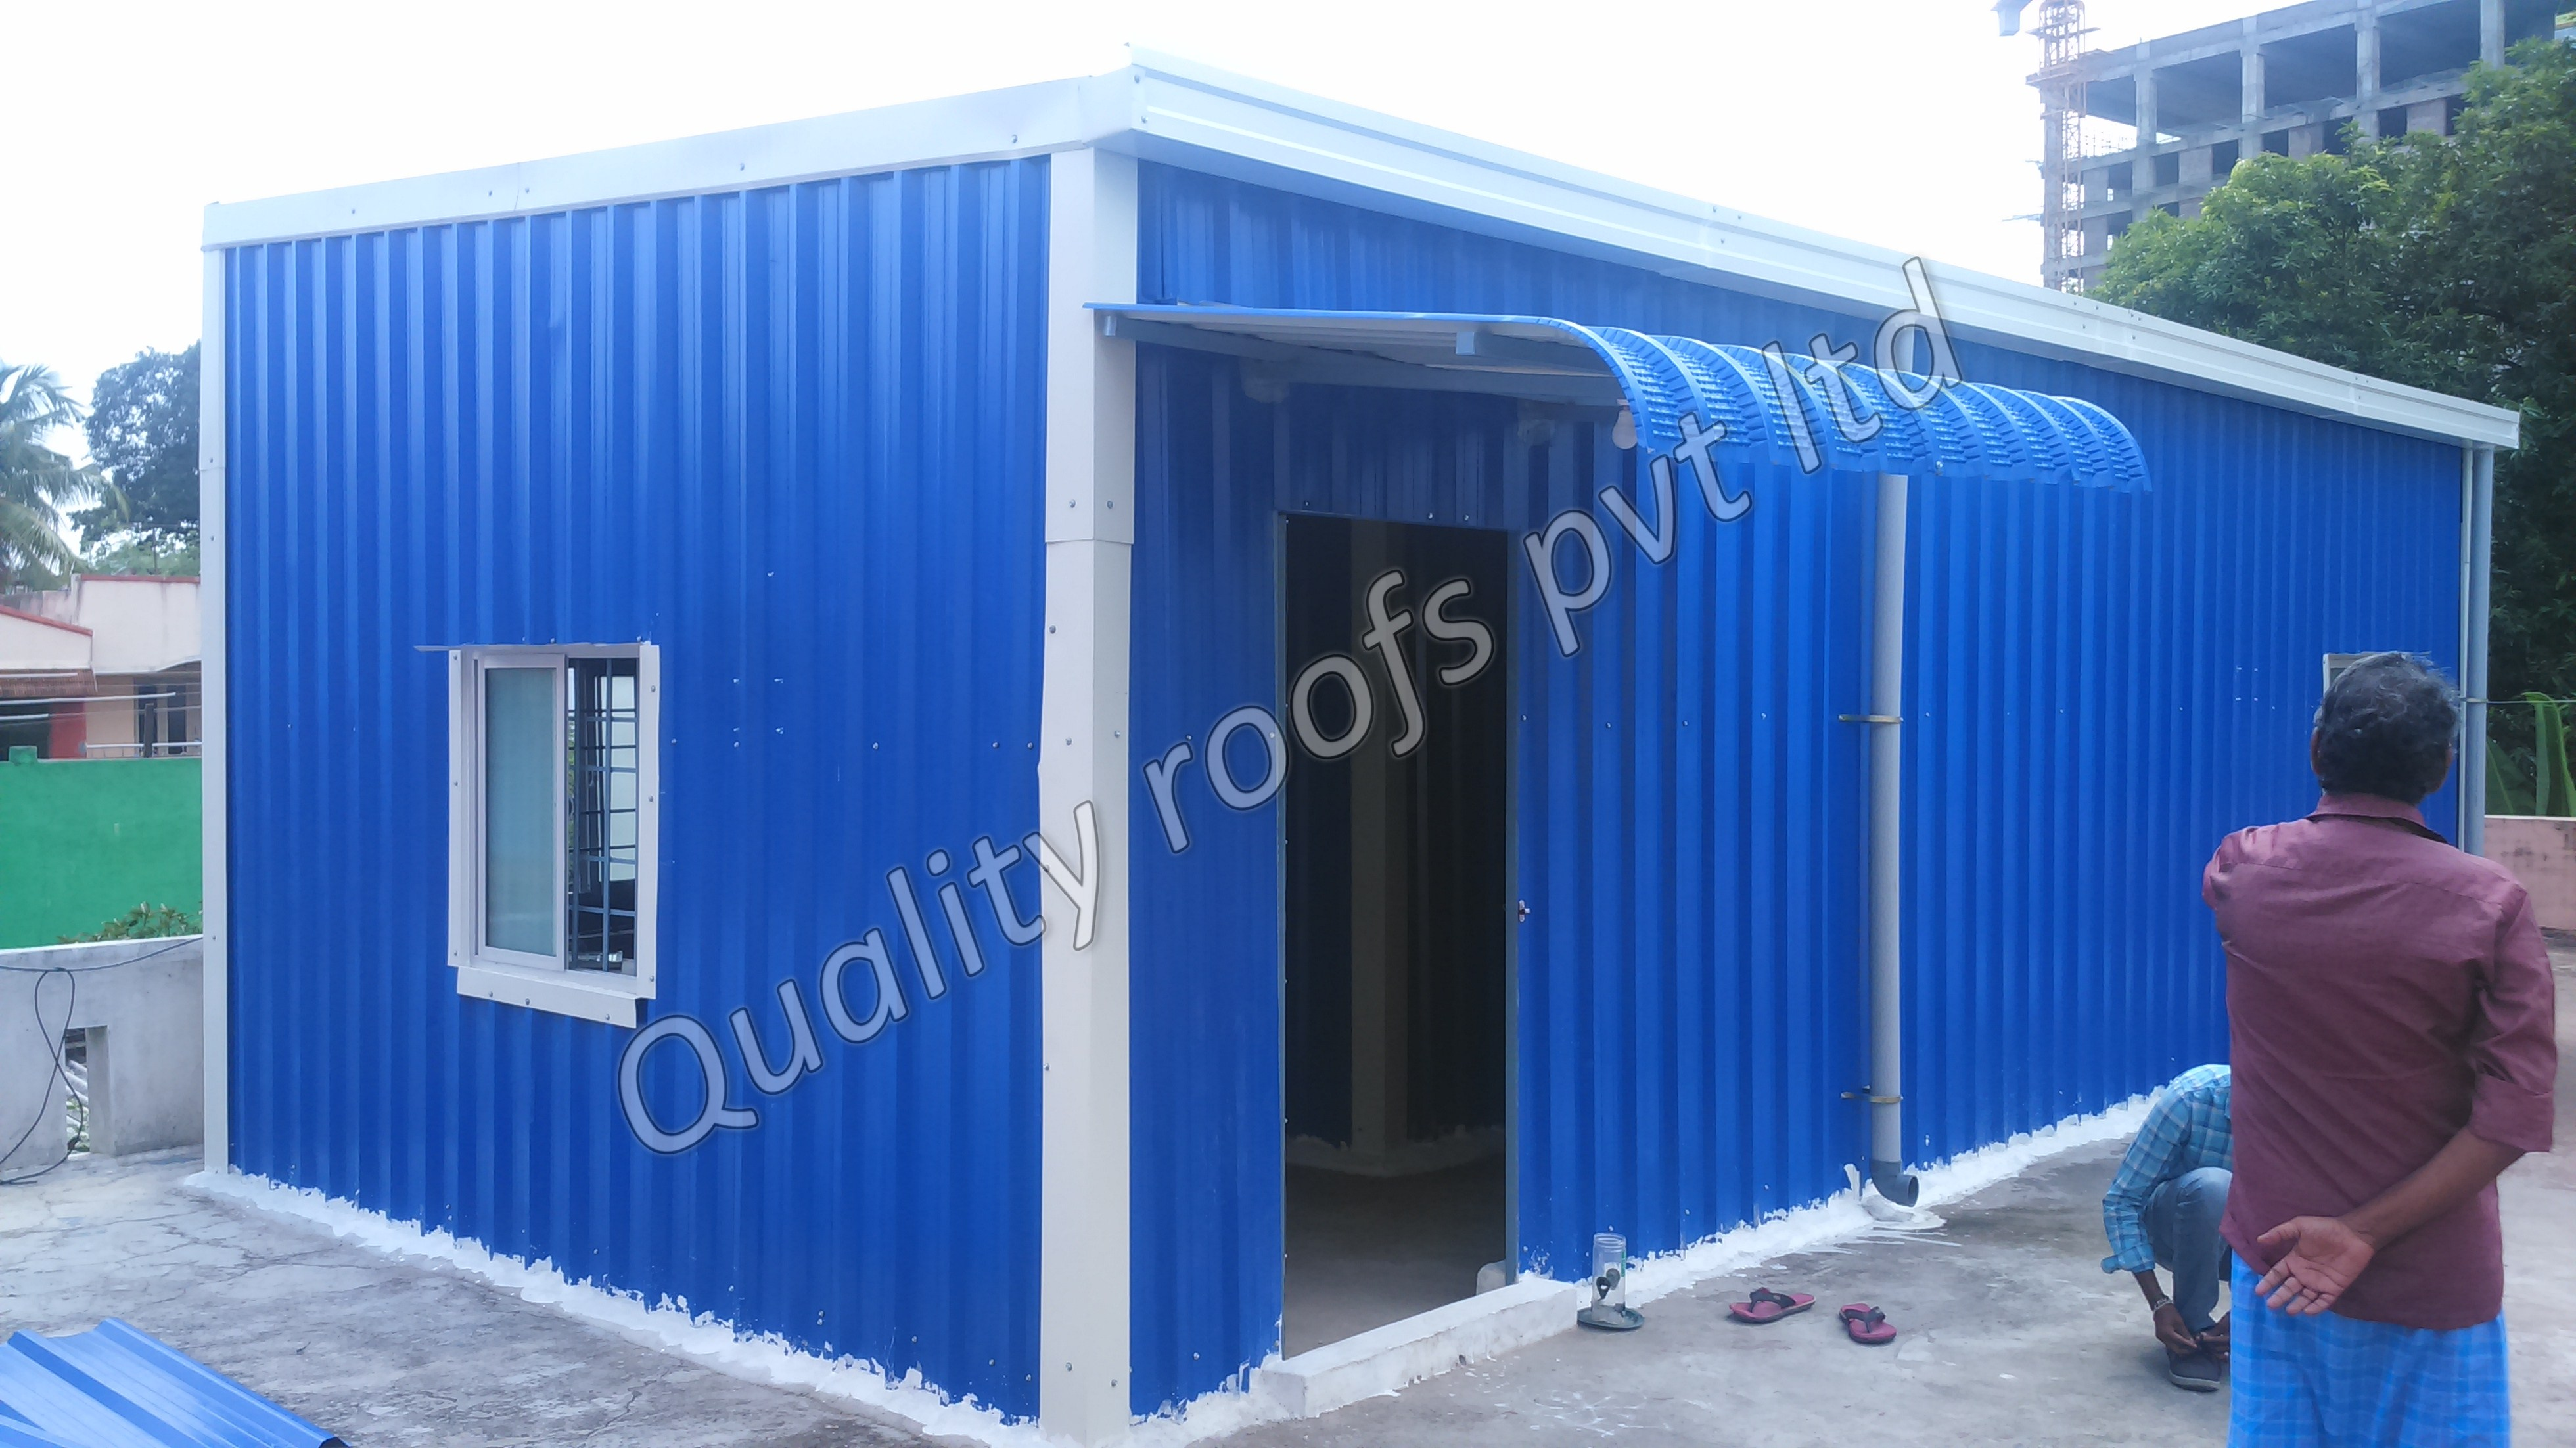 Cool Roofing Chennai                We are offering Cool Roofing Sheds In Chennai. Terrace Roofing In Chennai.The roofing sheds offered by us are manufactured from the quality approved material under the observation of skilled professionals. These roofing sheds are demanded in the industry due to their excellent finish & least maintenance. We are offering these roofing sheds in different sizes at competitive price. cost effective and environmentally friendly. thus keeping interiors cool during hot summer months Less thermal impact on roof surface Flexibility to withstand dynamic motions Greater efficiency from existing air-conditioning plant through reduced peak loads Significant abatement of Greenhouse Gas resulting from the power saved Environmental responsibility.